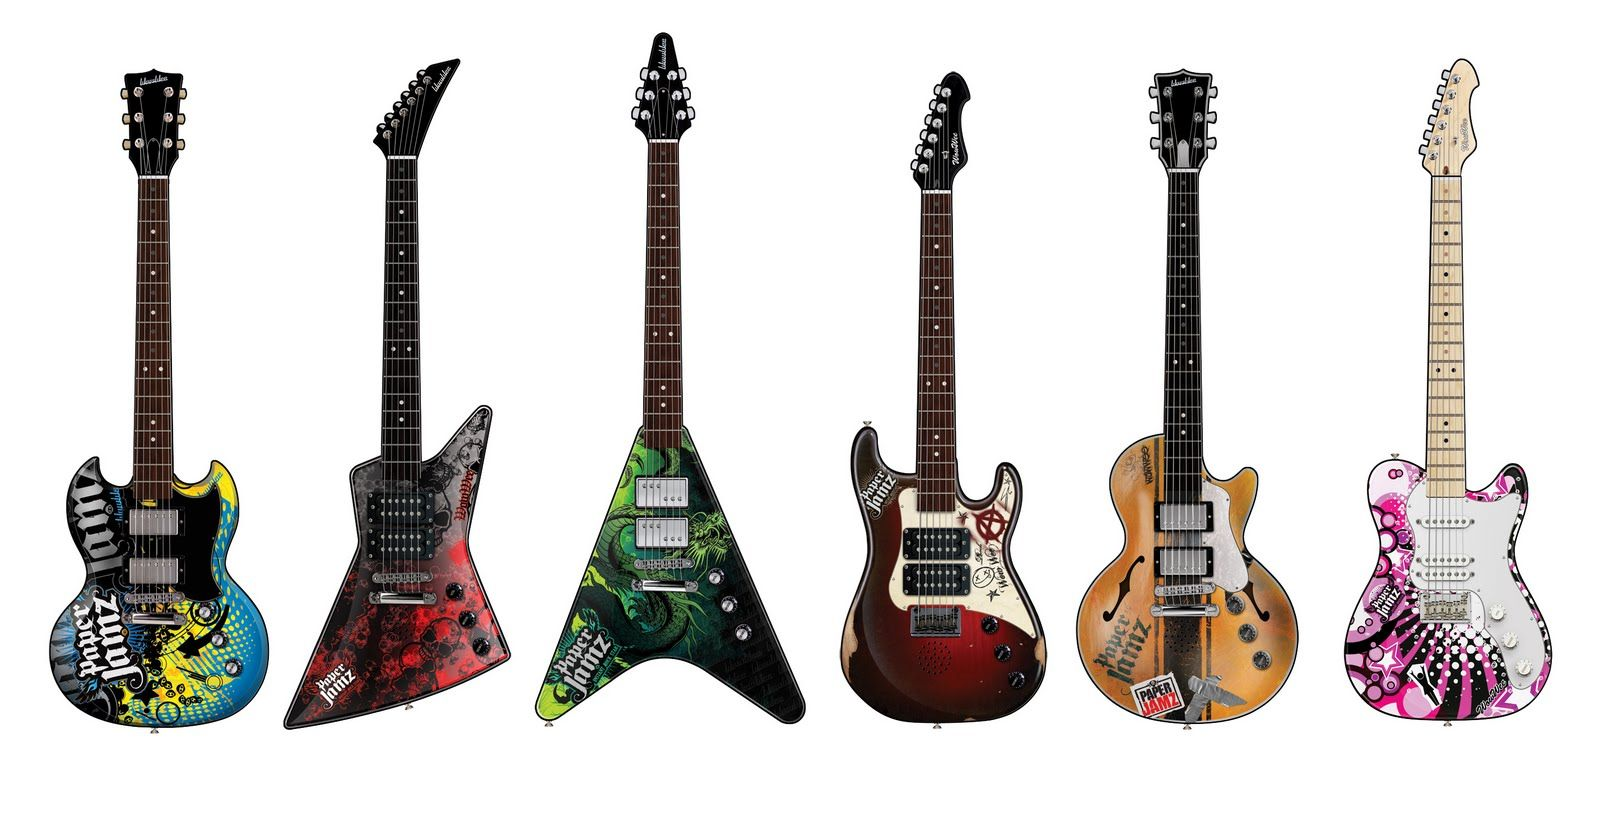 The Top 10 Most Expensive Guitars in the World